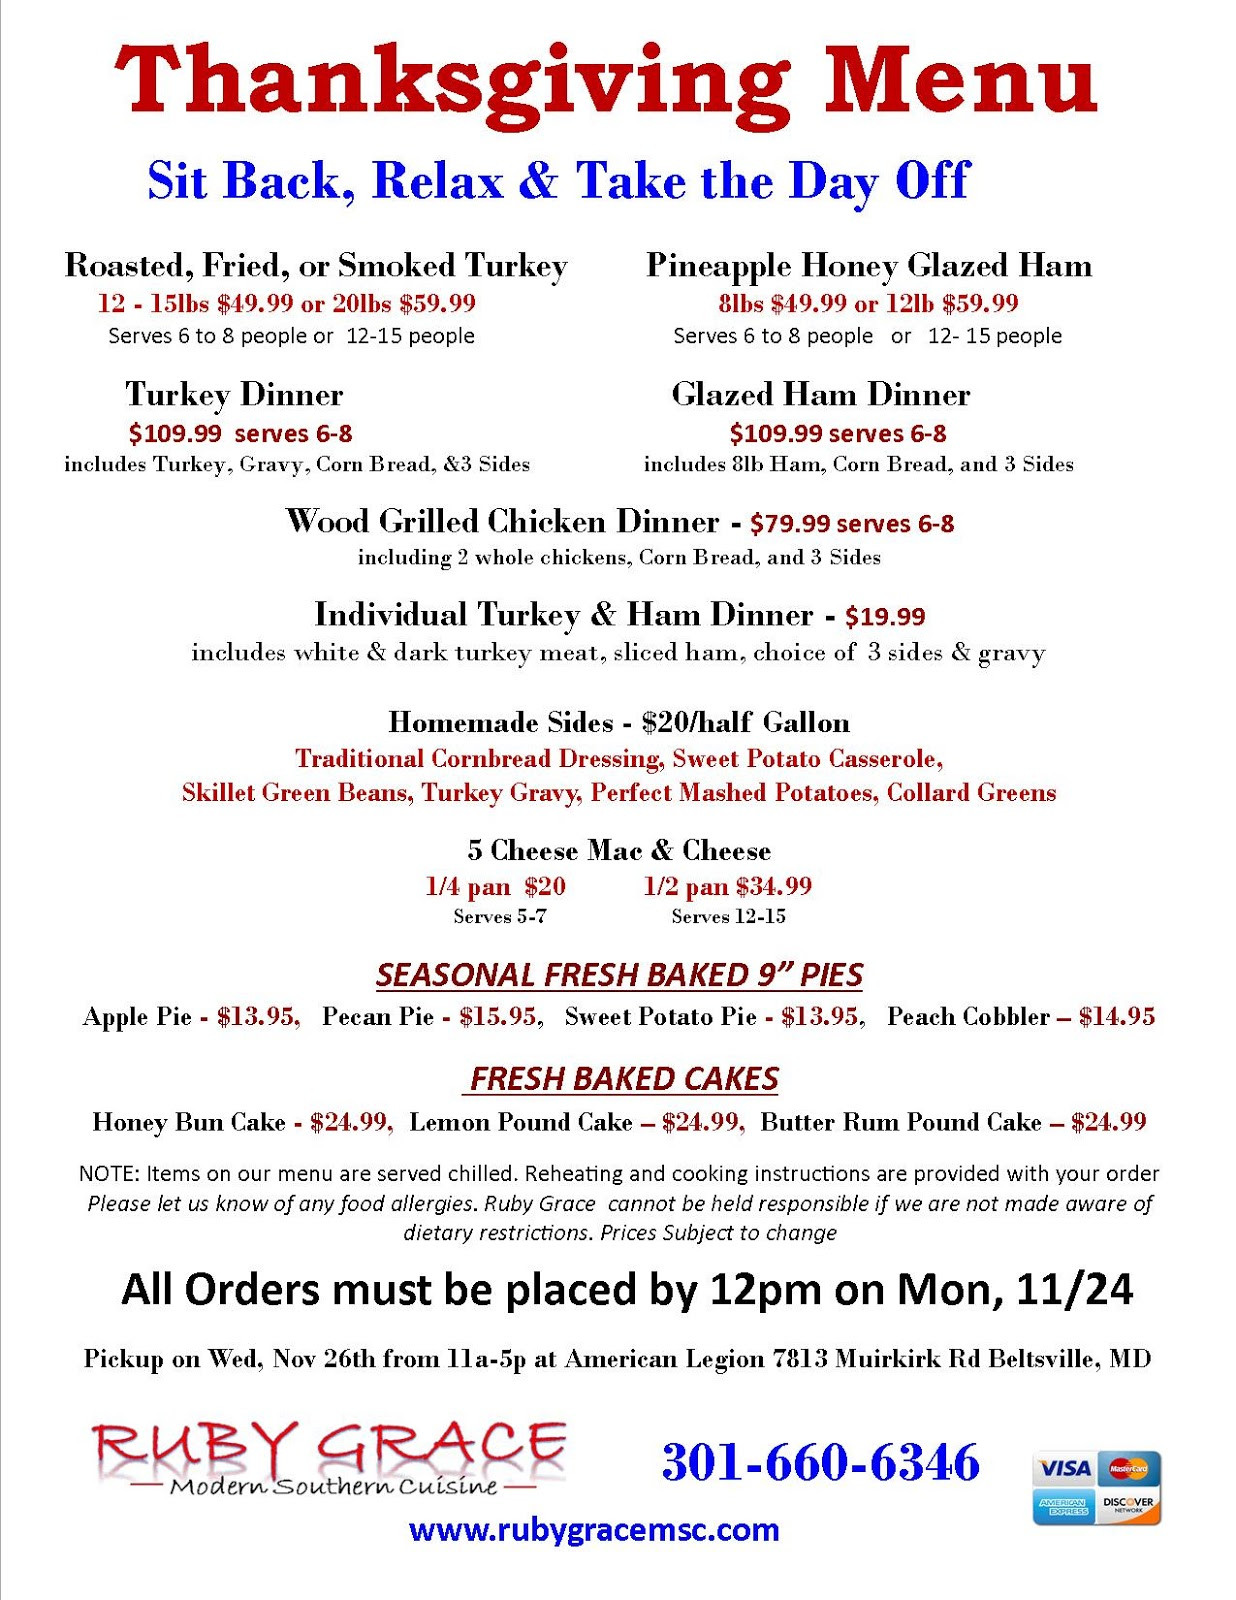 Traditional Southern Thanksgiving Dinner Menu  South Laurel Views Nov 27 Ruby Grace Southern